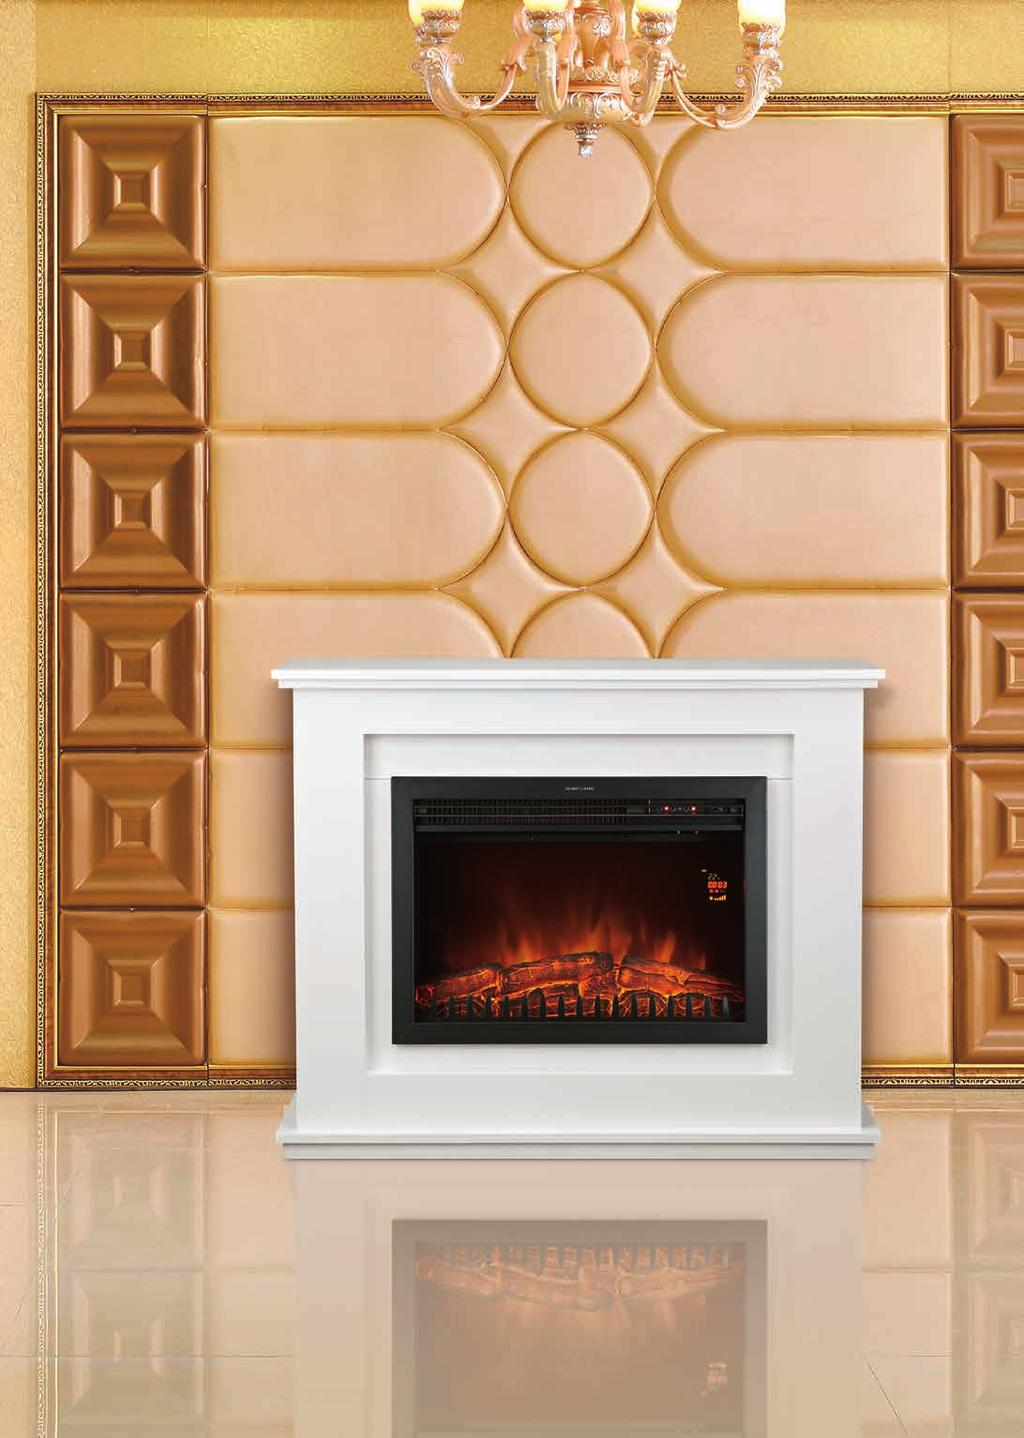 EF461L-E Inset fire style EF461 Inset fire style 675x270x525mm 610x205x442mm 11.3/12.